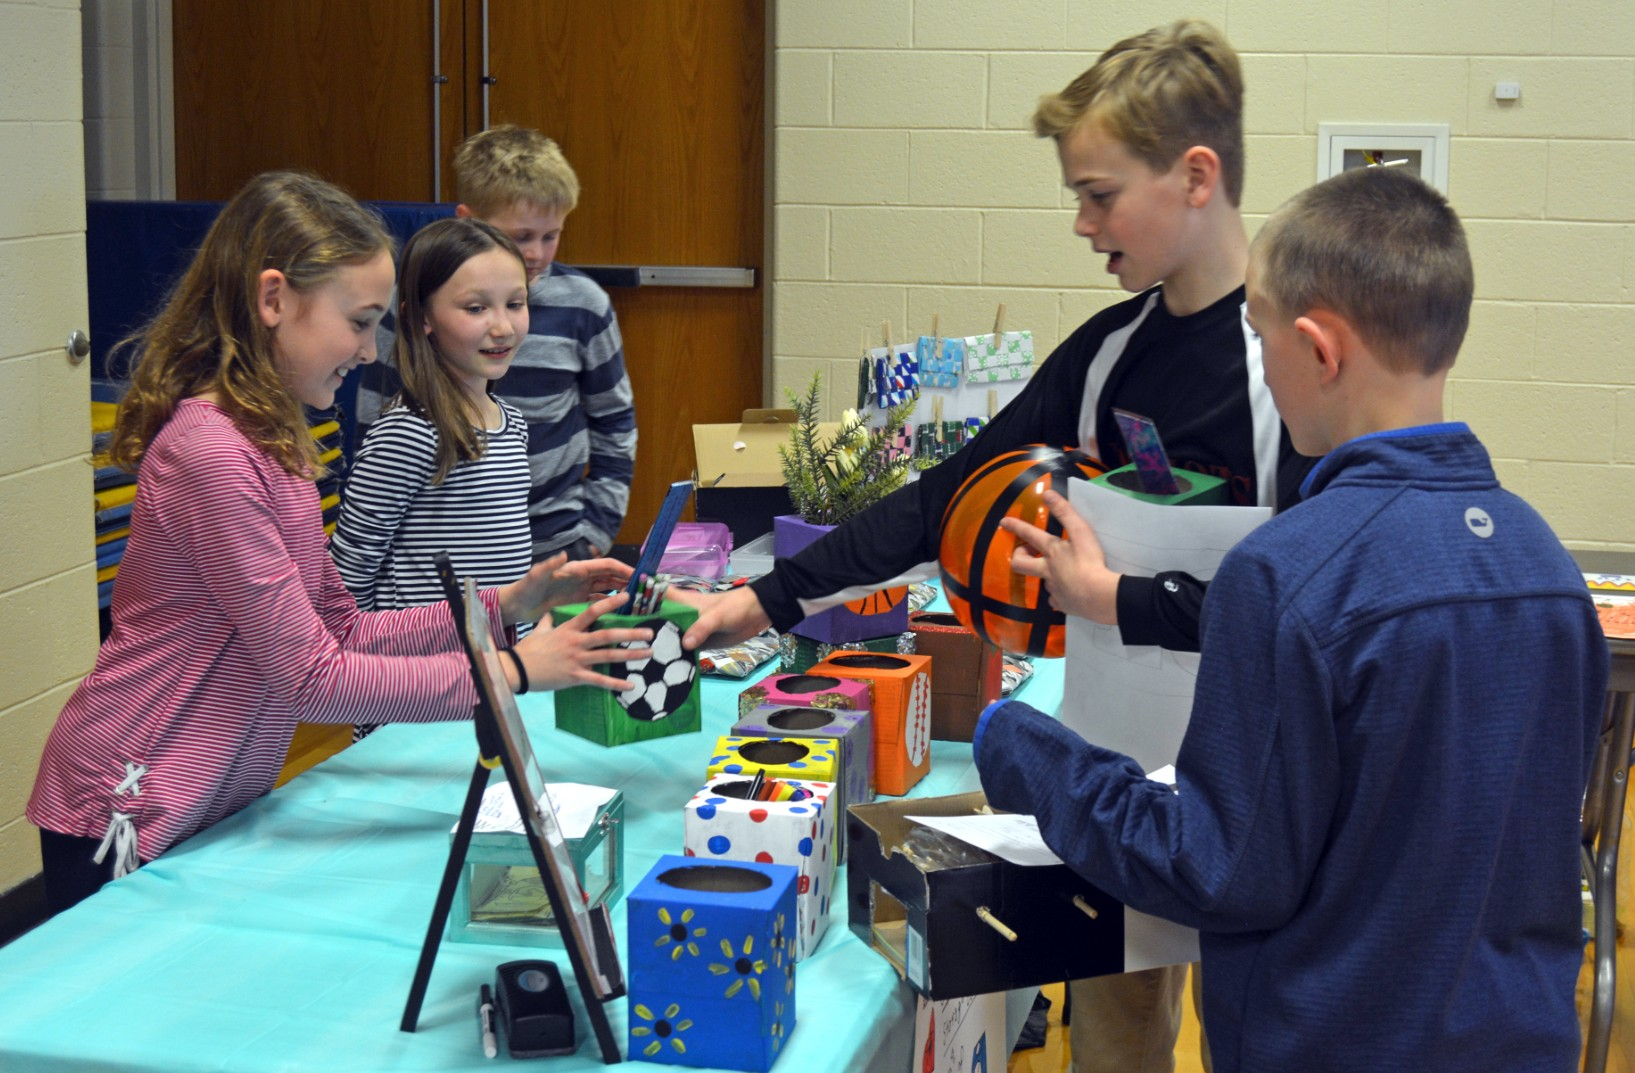 FOURTH GRADERS DEMONSTRATE BUSINESS ACUMEN AT MINI SOCIETY